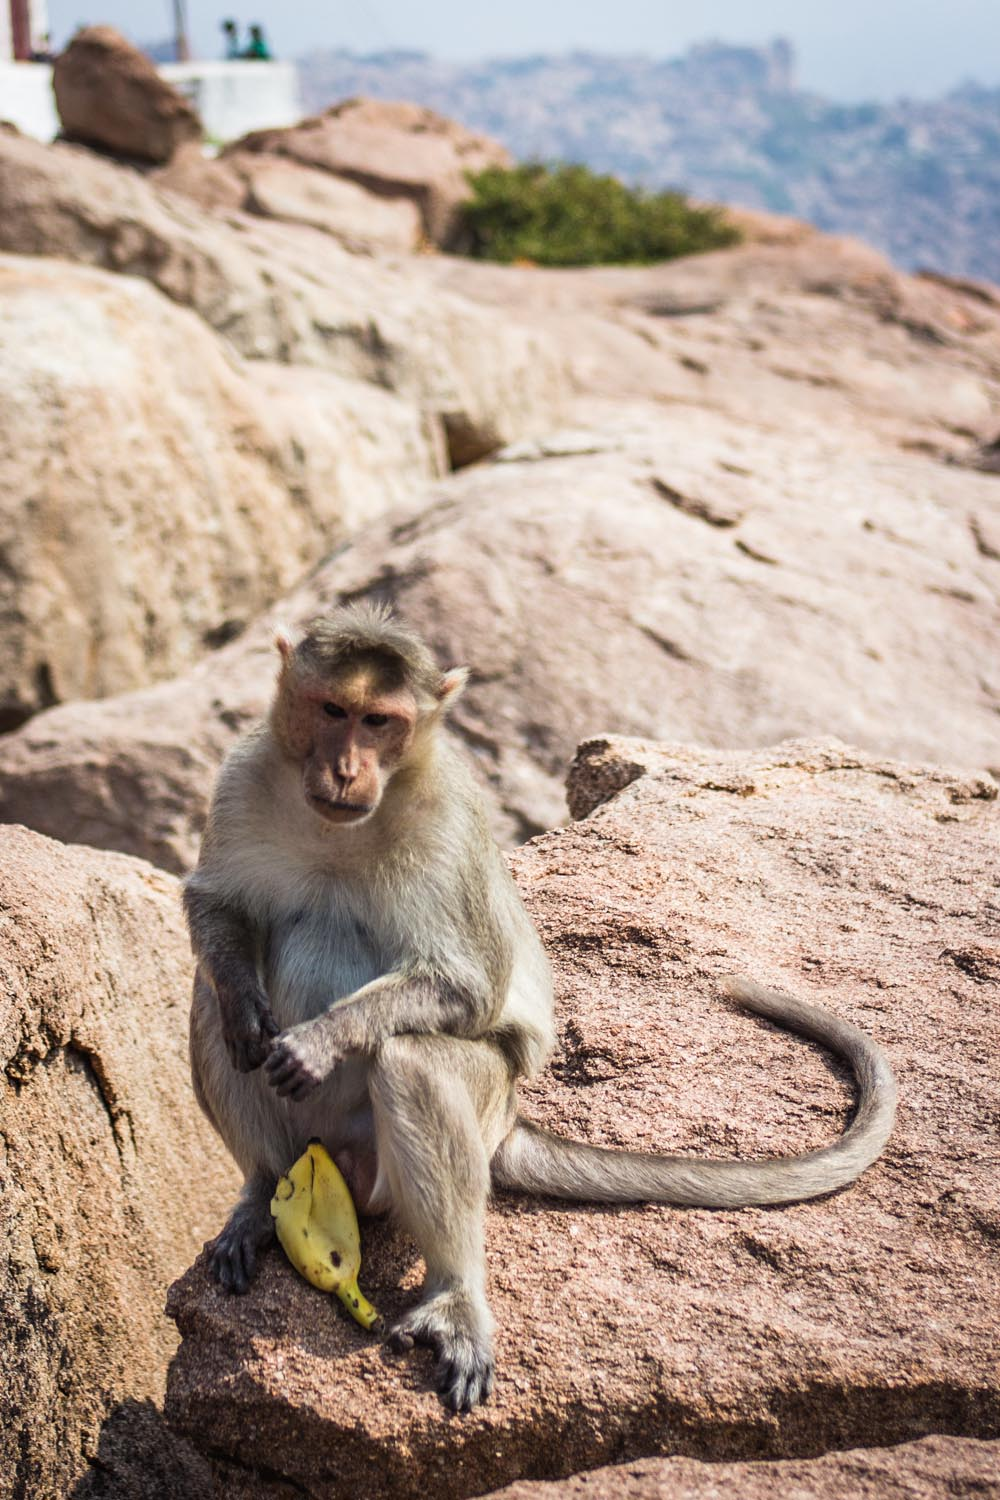 Monkey at the Hanuman Temple